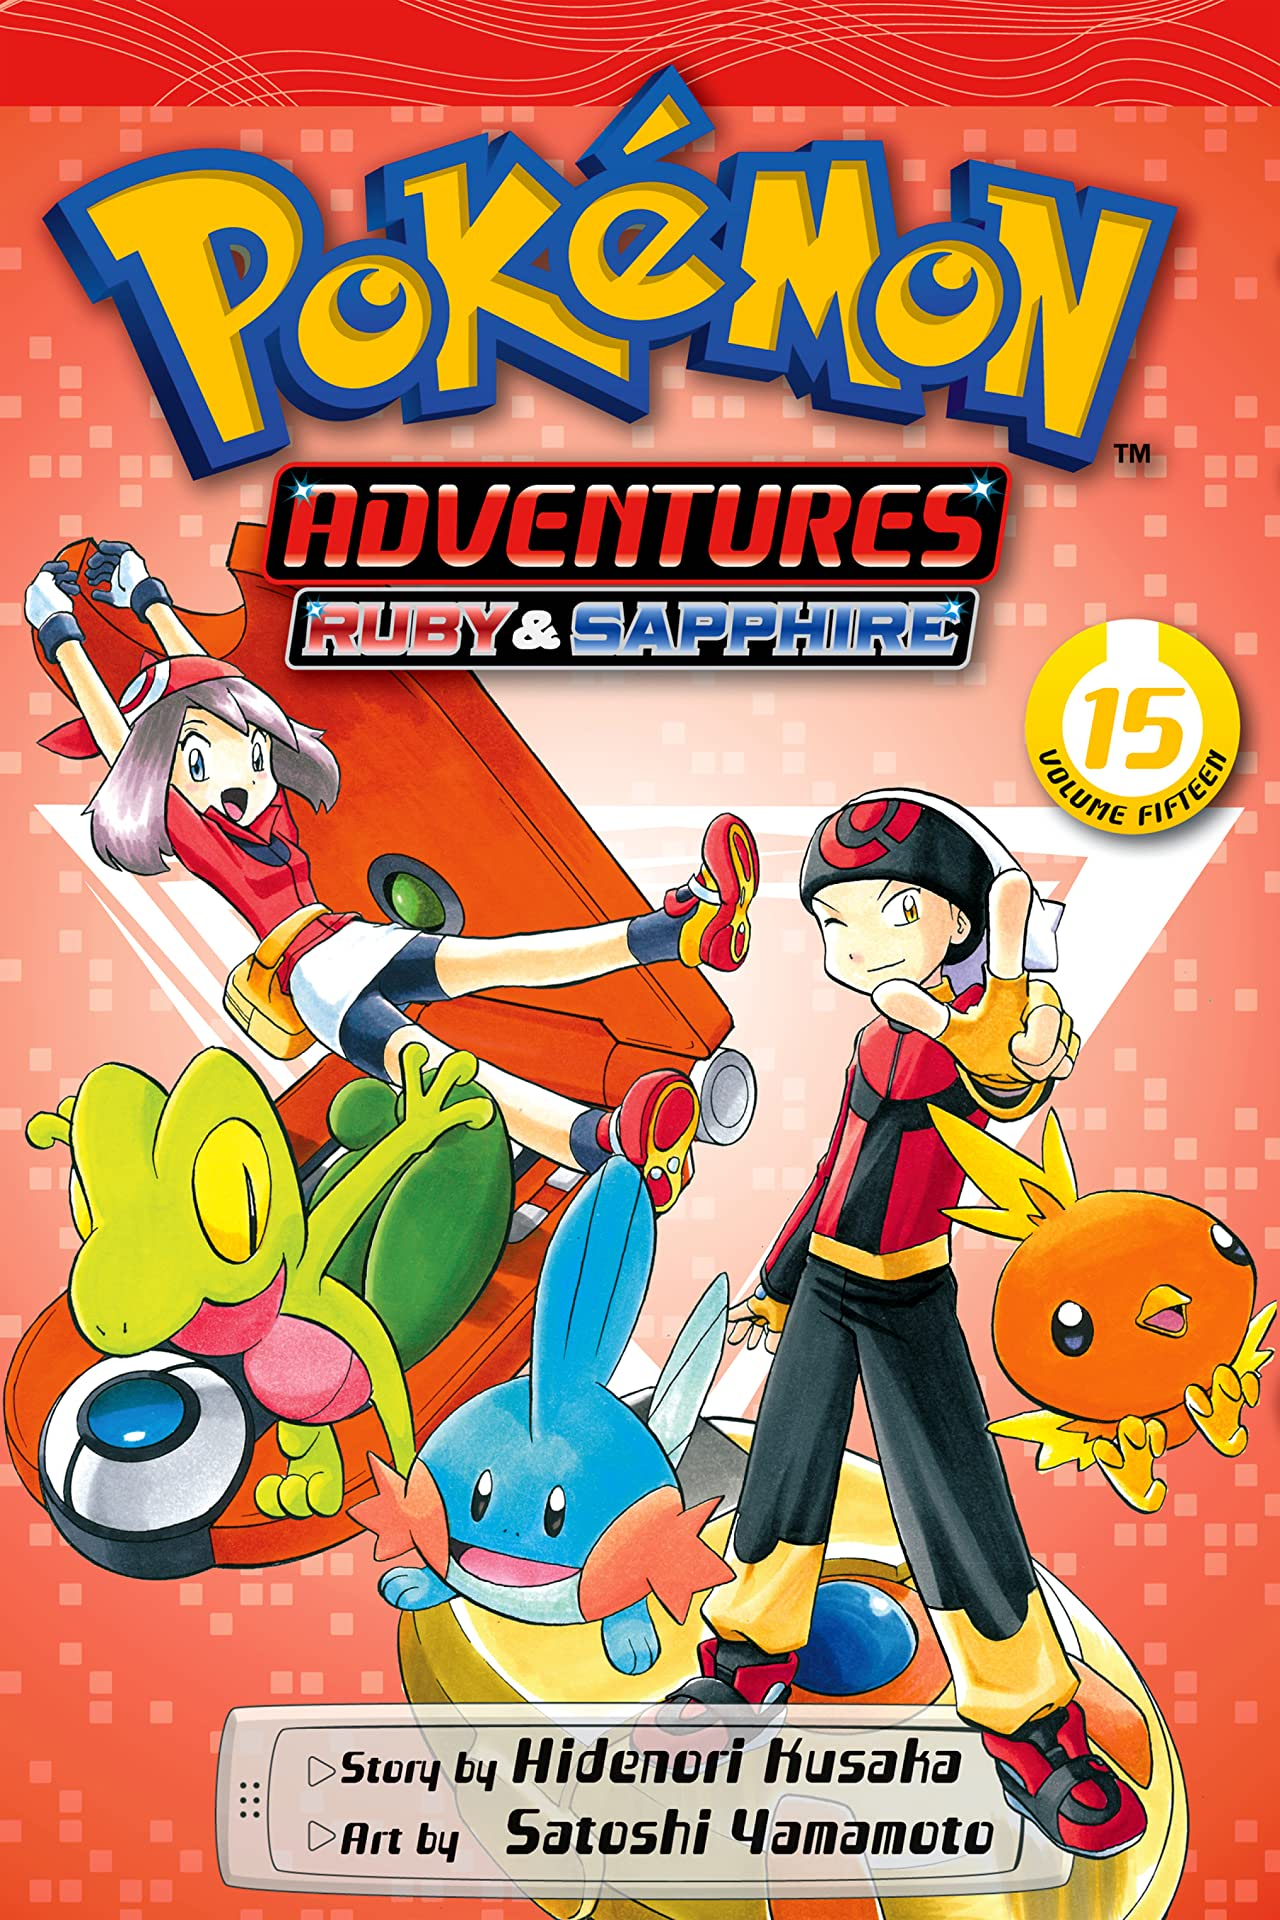 Pokémon Adventures (Ruby and Sapphire) Vol. 15